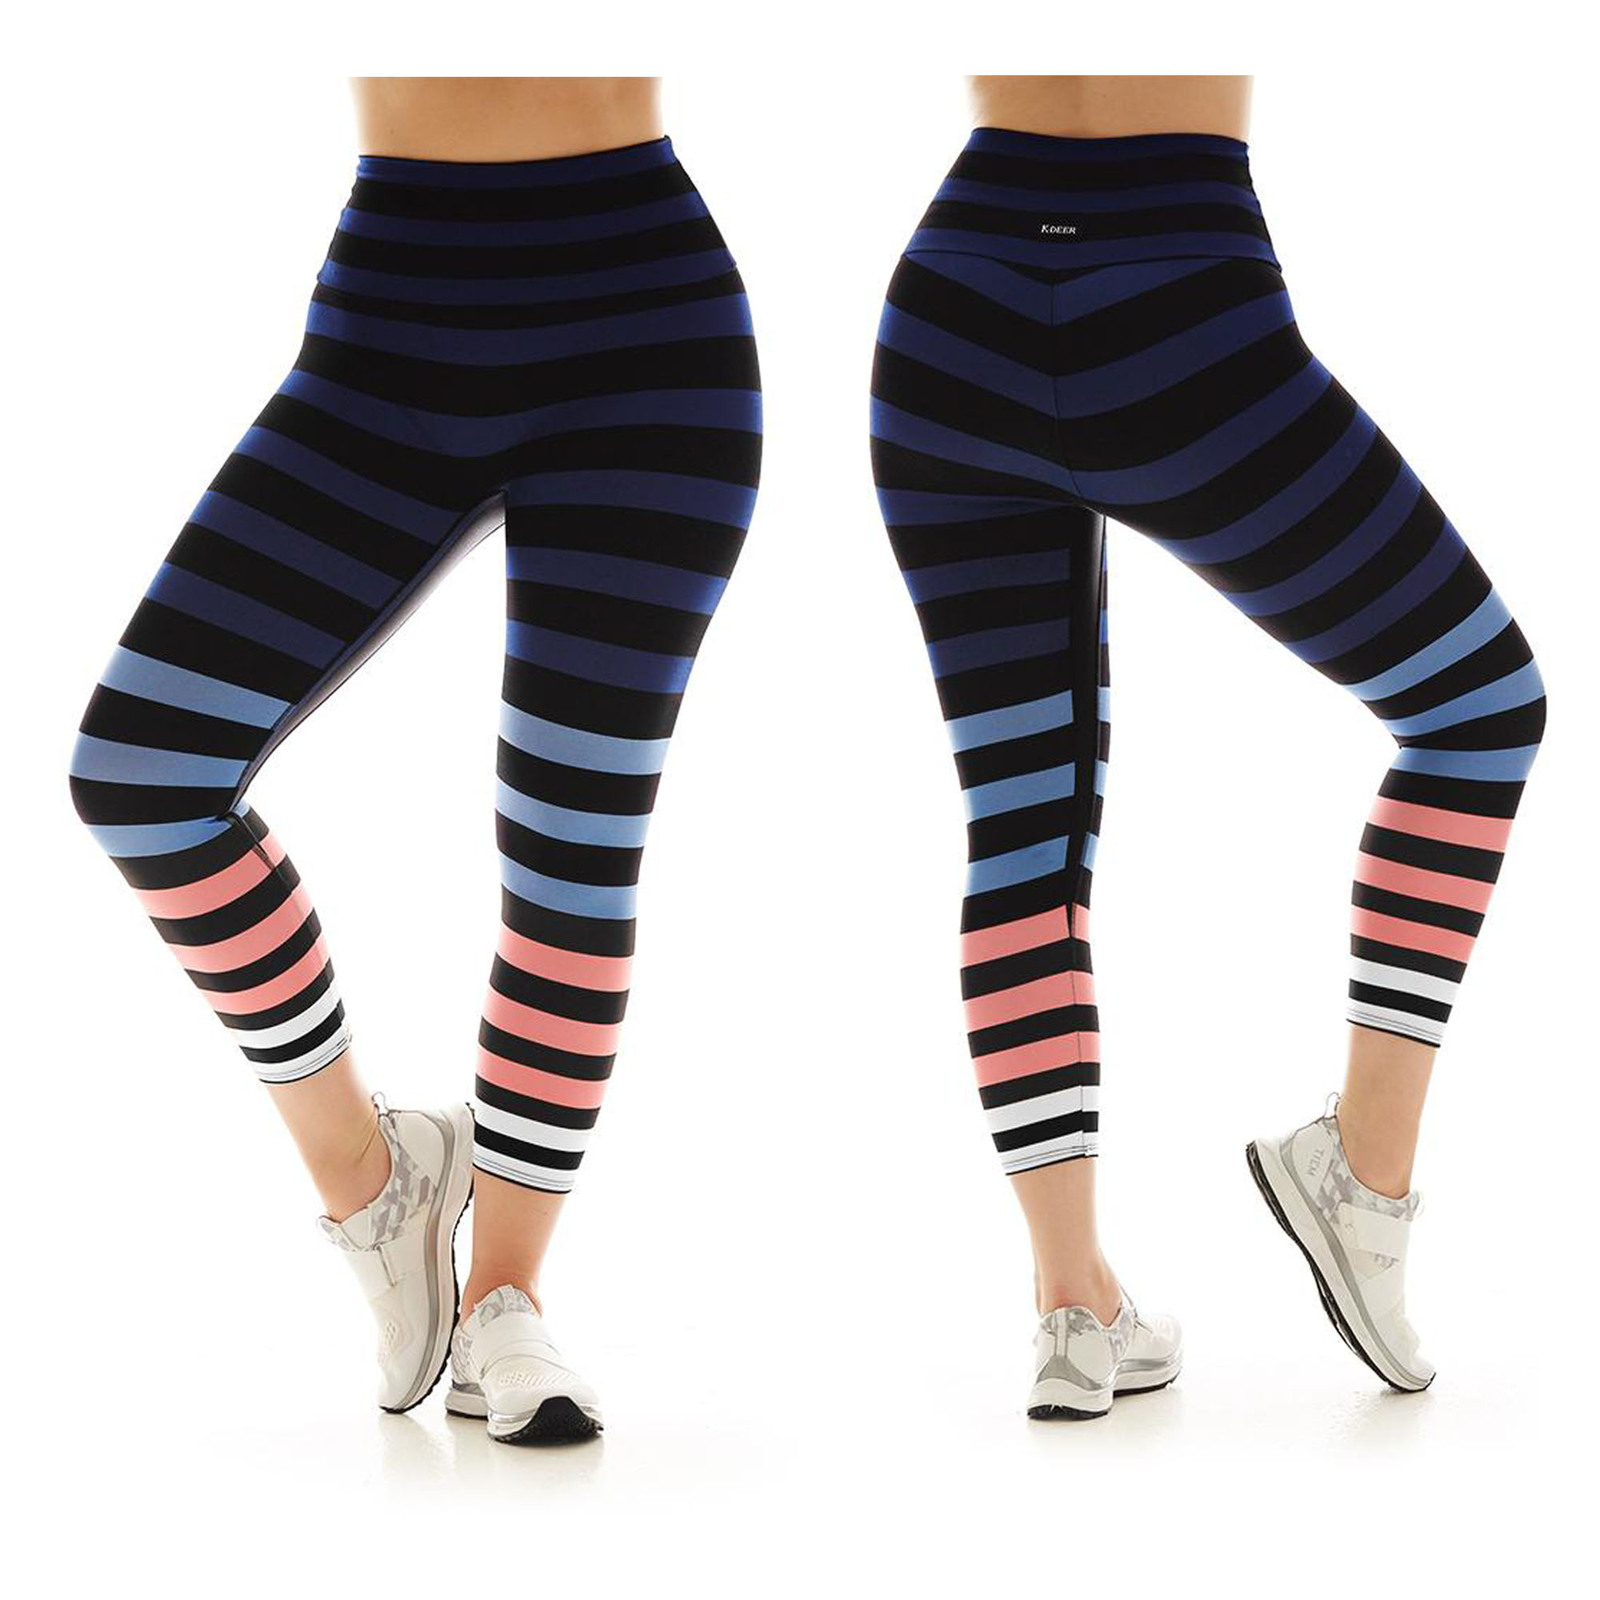 K-Deer Women's Blue/Coral/White Molly Stripe Capri Length Leggings, XS-4X